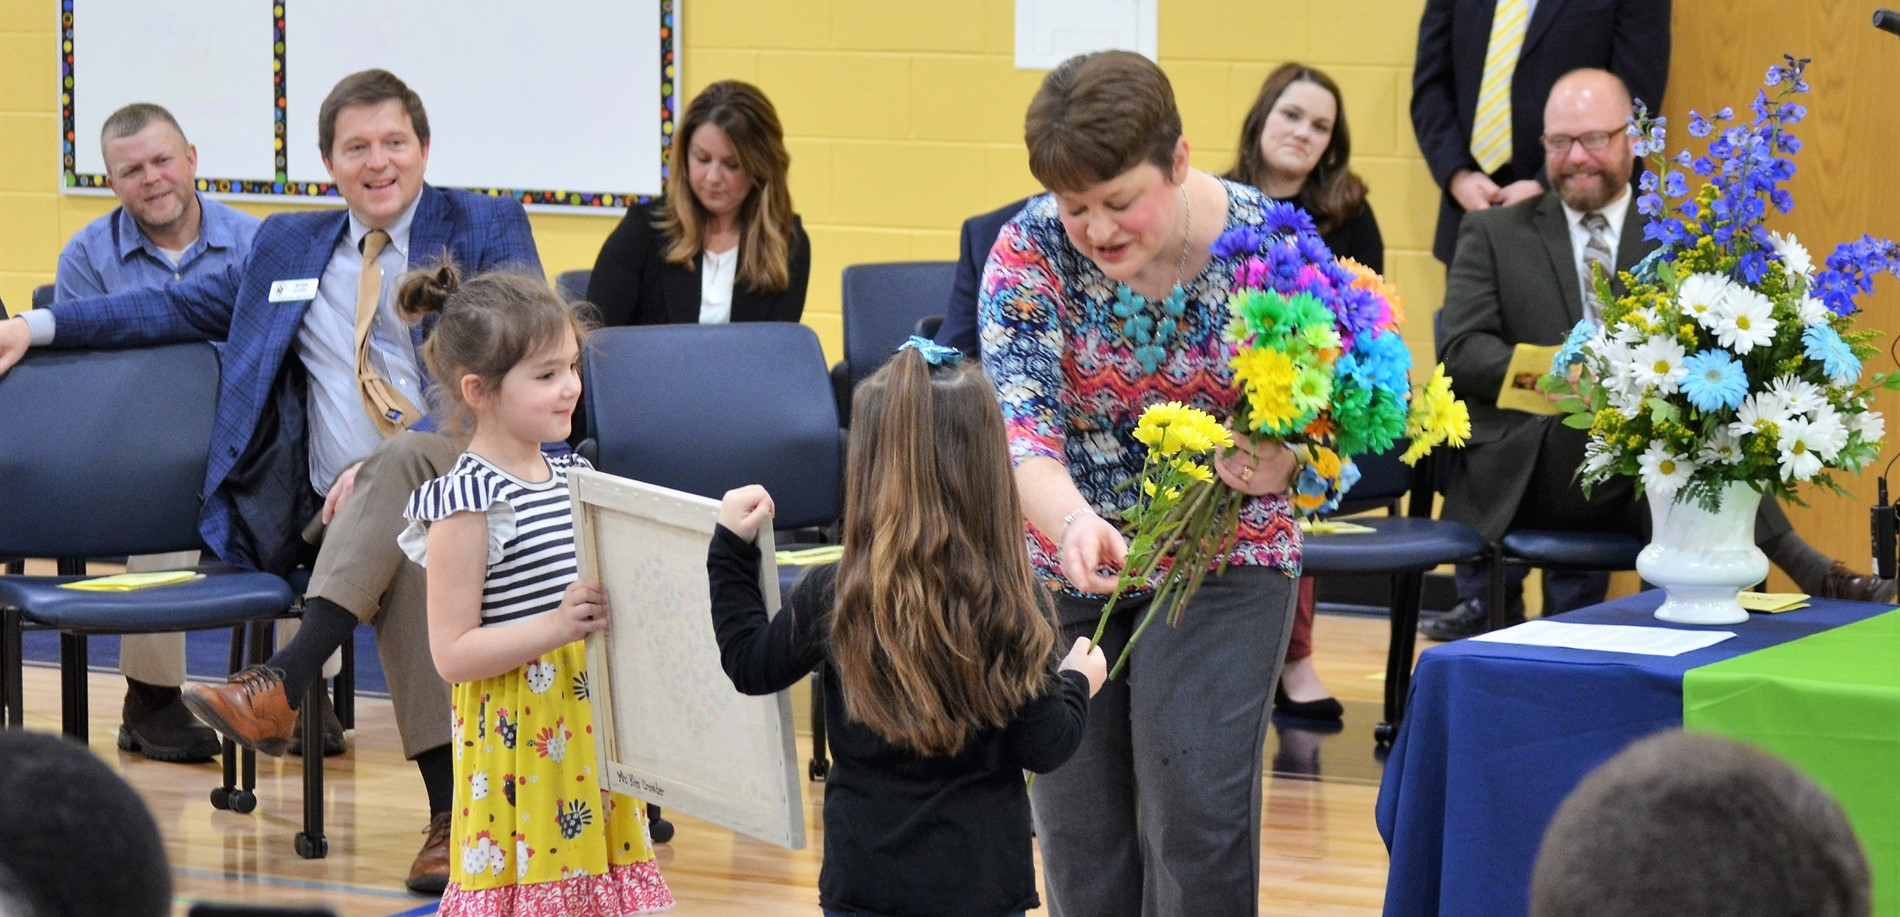 Cecilia Valley Elementary School teacher Kim Crowder receives flowers and gifts from her students during the HCS WHAS 11 ExCEL Award Ceremony.